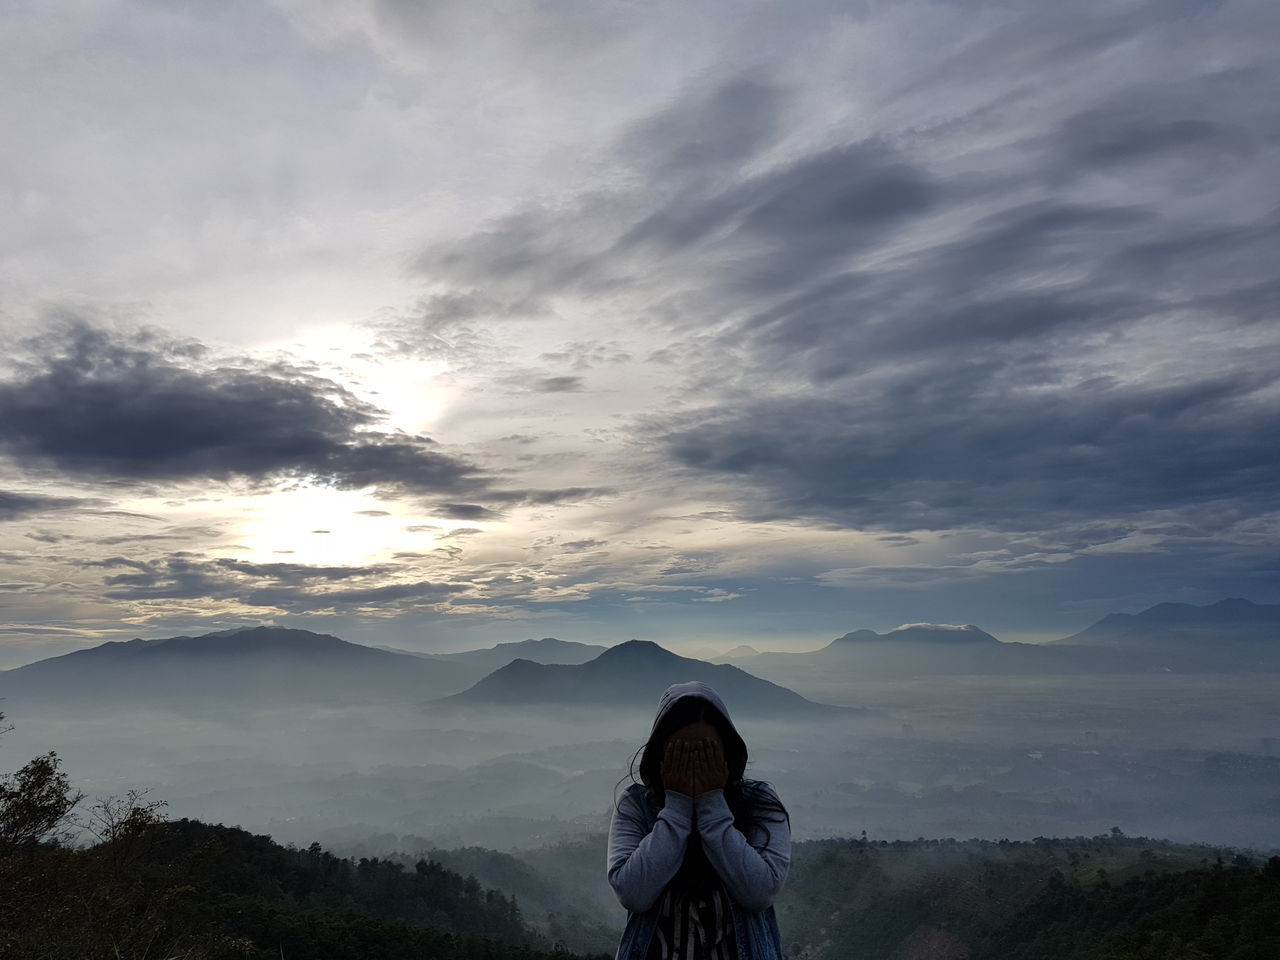 Adult Adults Only Beauty In Nature Cloud - Sky Day Hiking Landscape Mountain Mountain Range Nature One Person One Woman Only Only Women Outdoors People Scenics Sky Tree Women